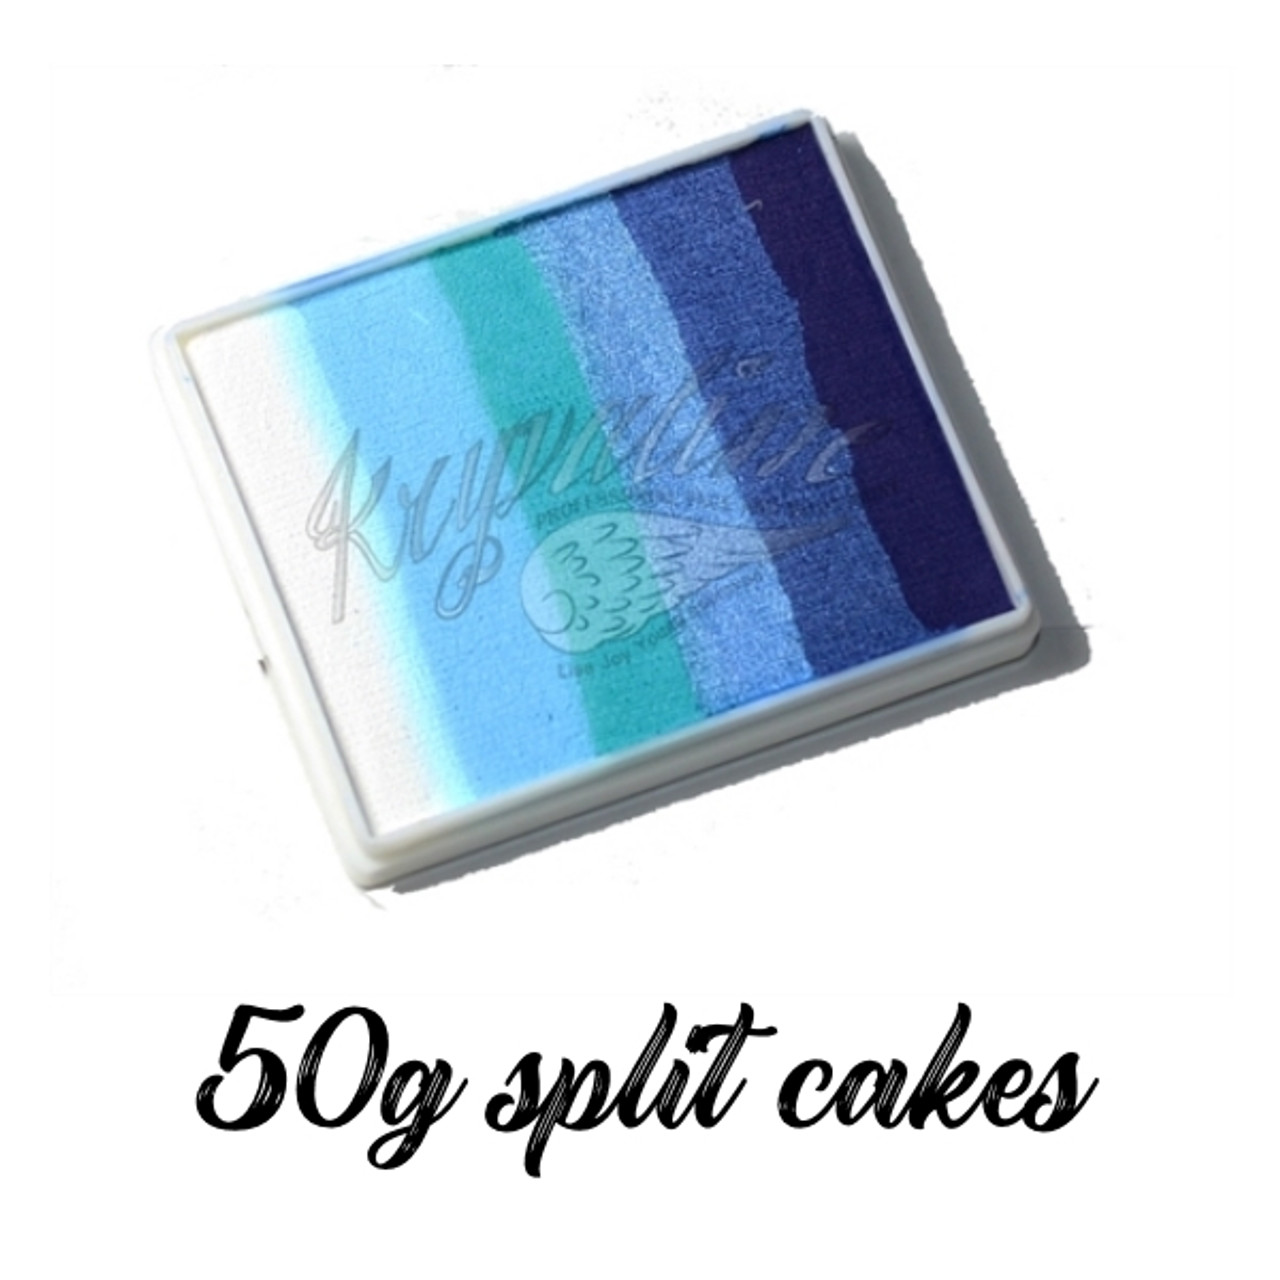 50g split cakes (other)